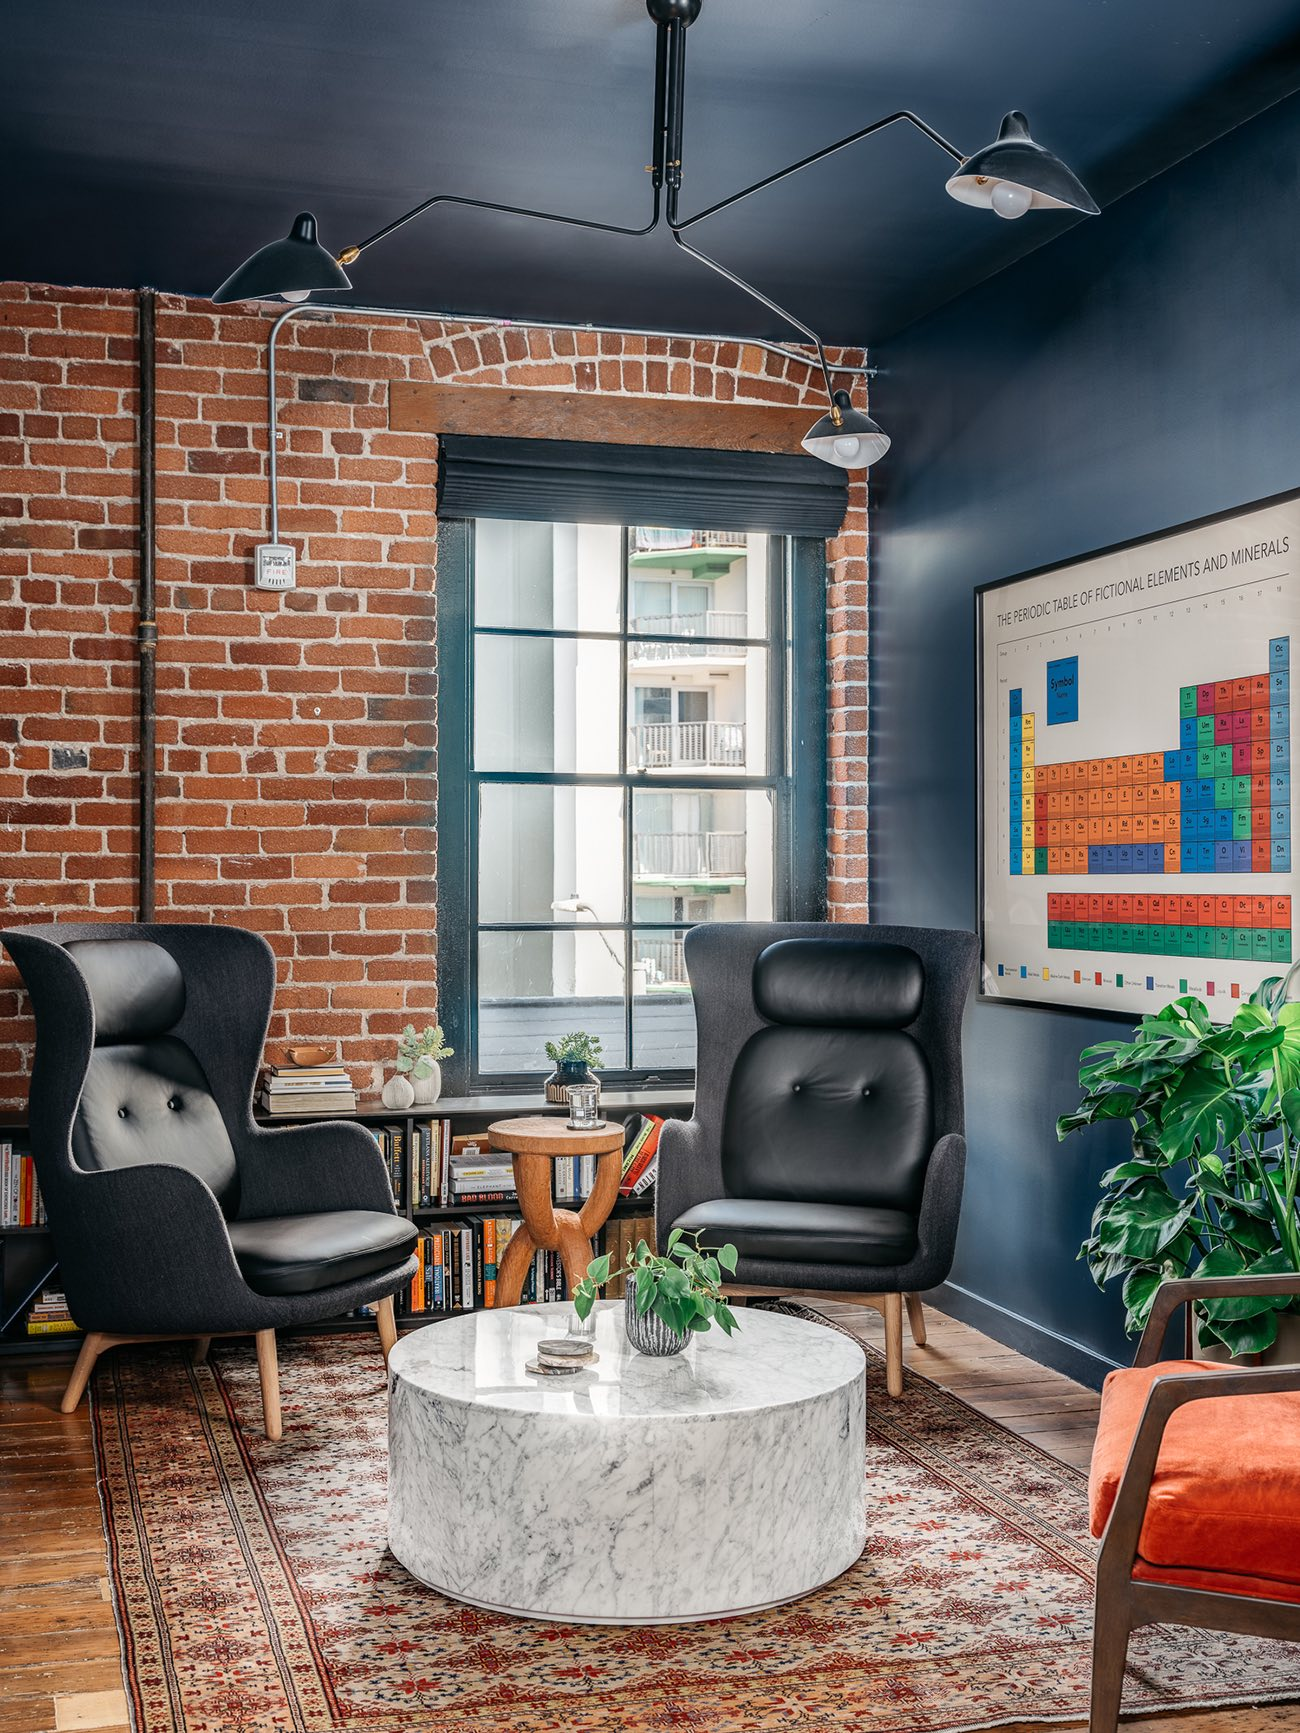 A Look Inside EcoR1 Capital's New San Francisco Office